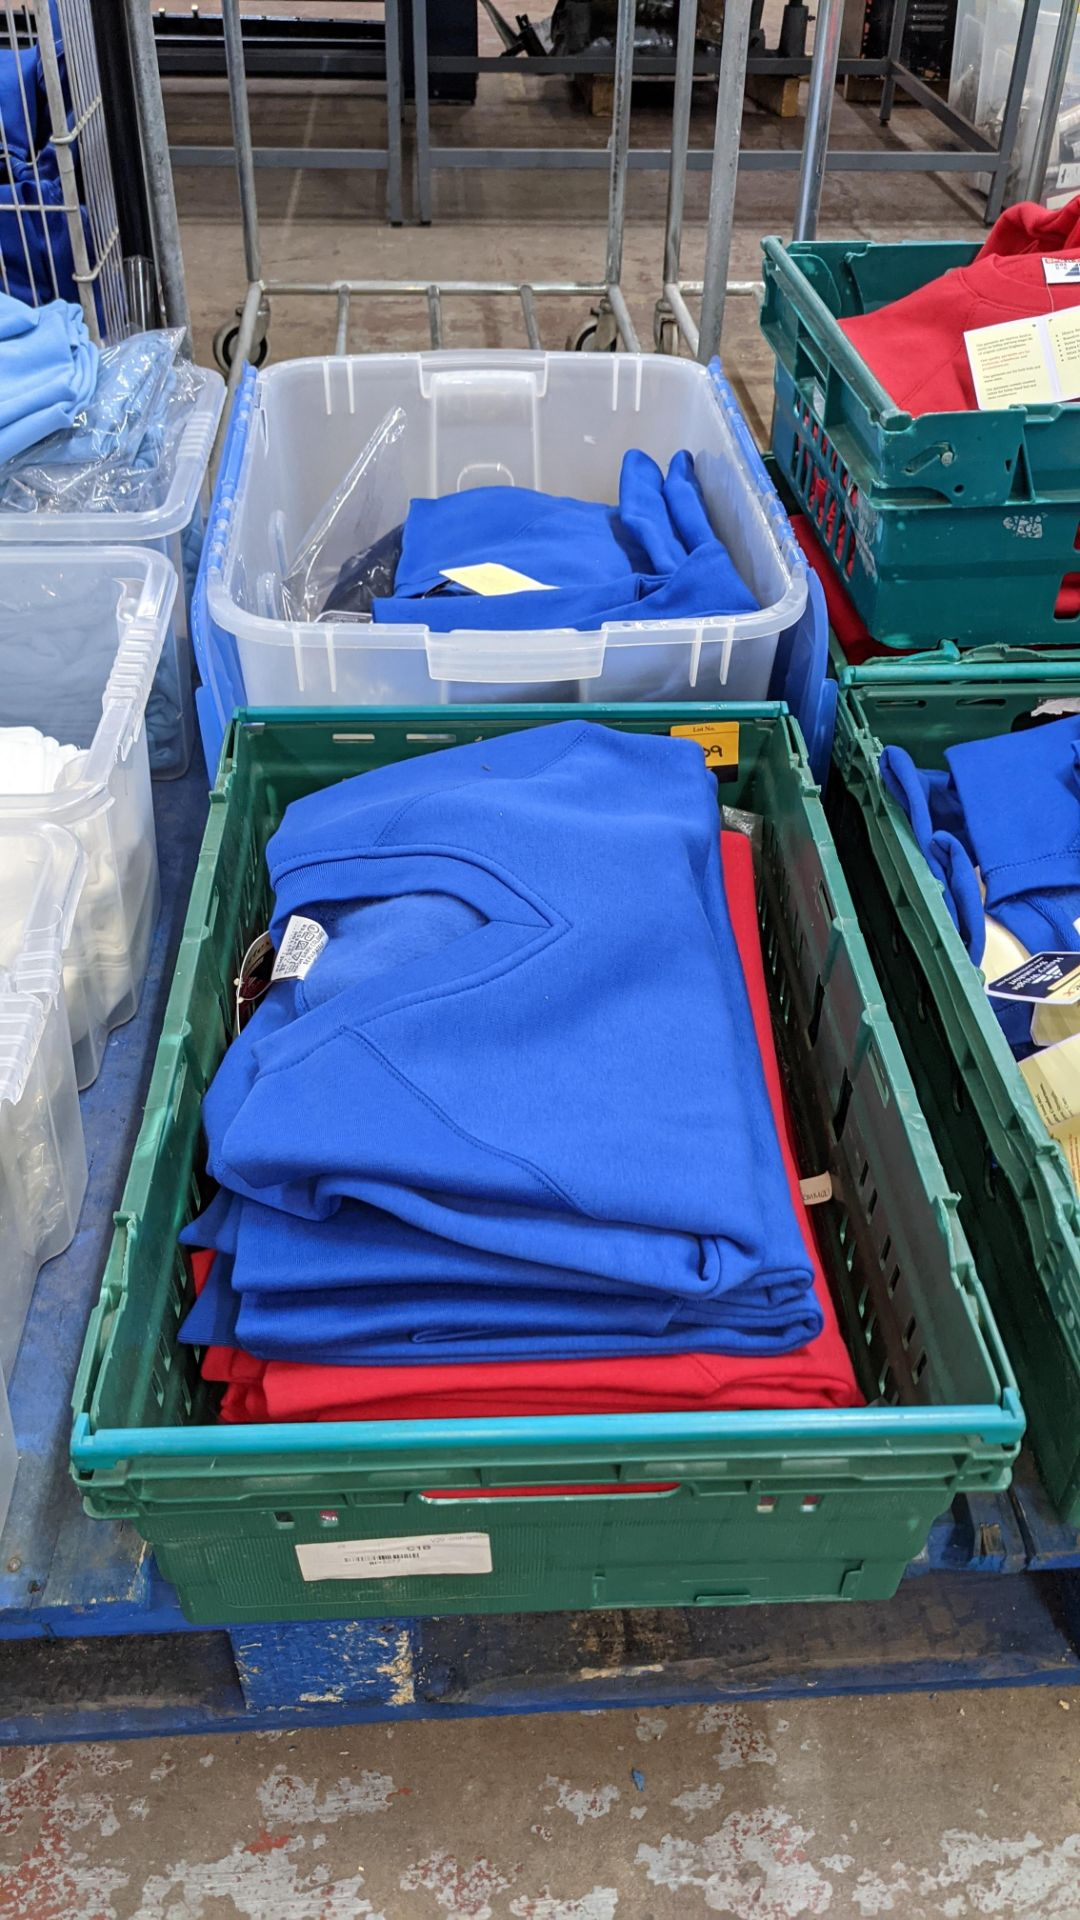 Approx 16 off Sportex children's assorted sweatshirts - the contents of 2 crates. NB crates exclude - Image 2 of 7